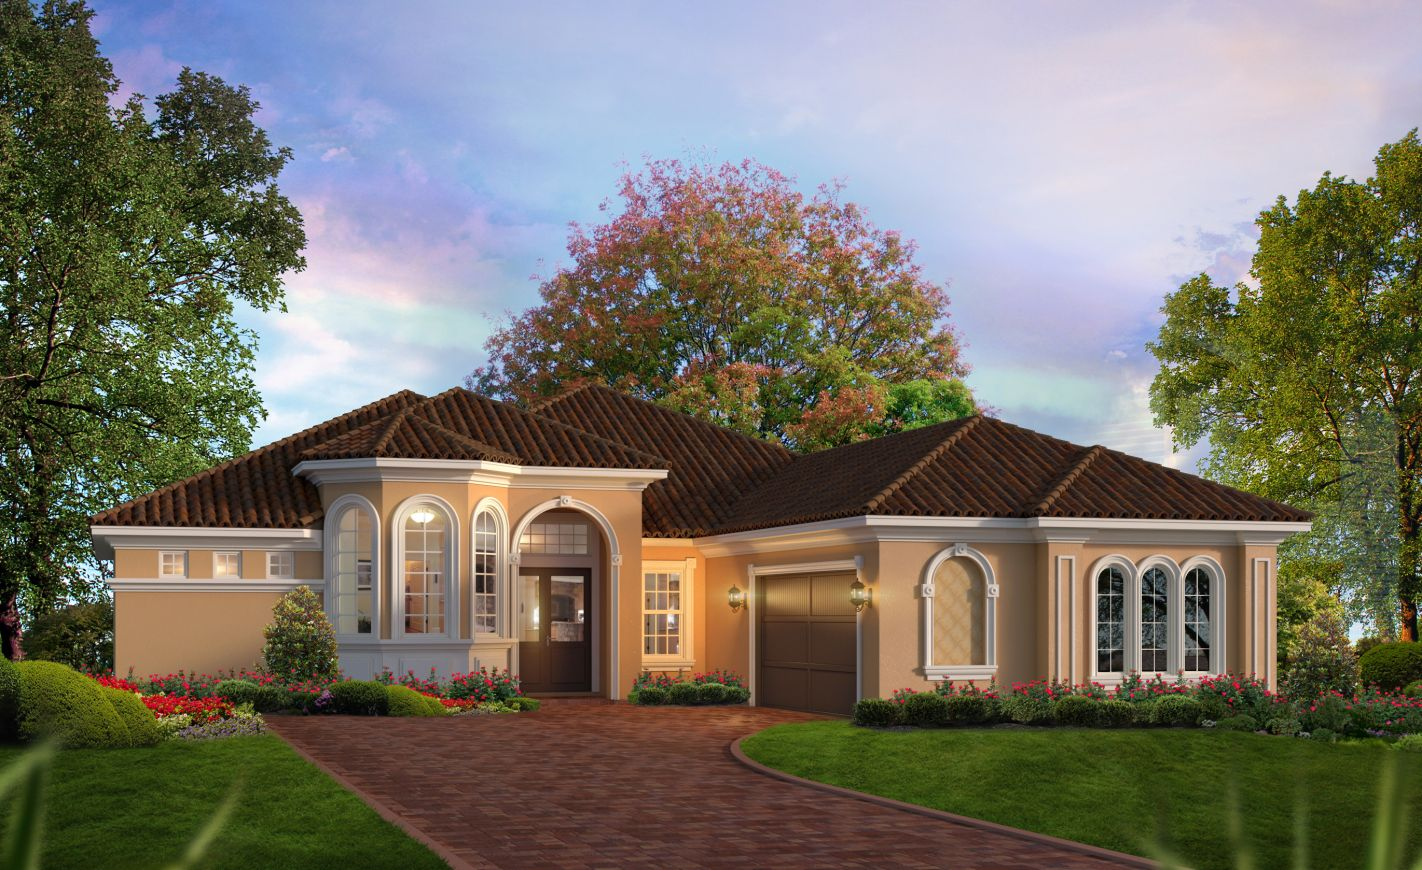 Homes For Sale In The Trails Ormond Beach Fl